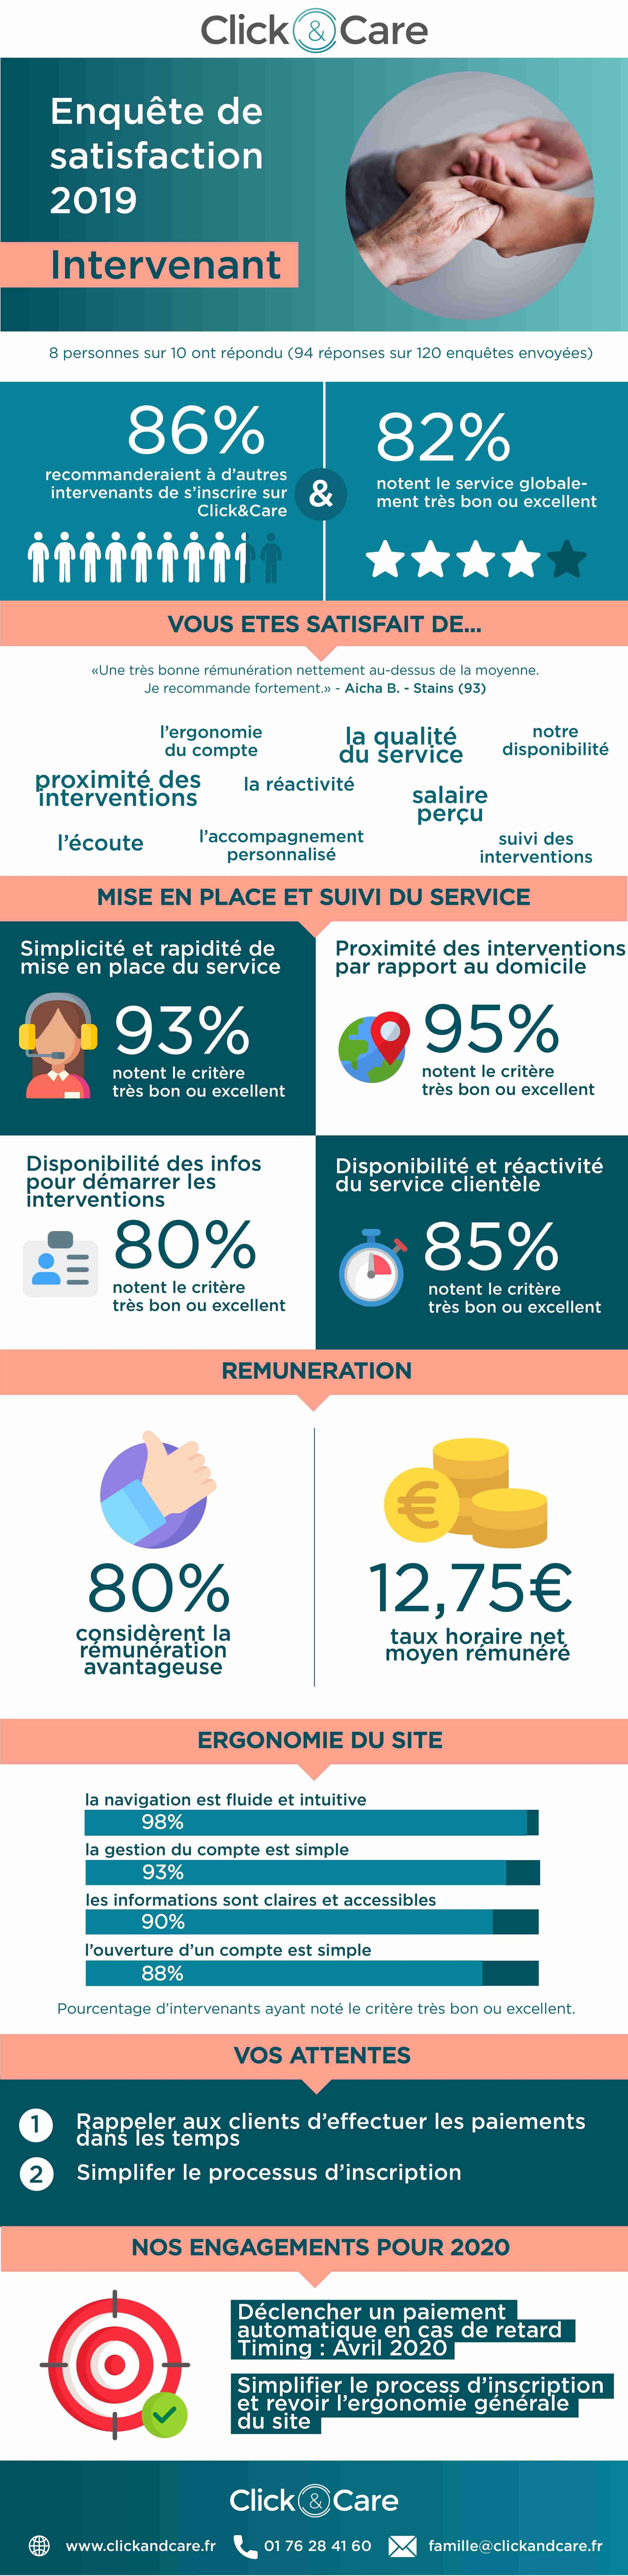 infographie enquête de satisfaction intervenants 2019